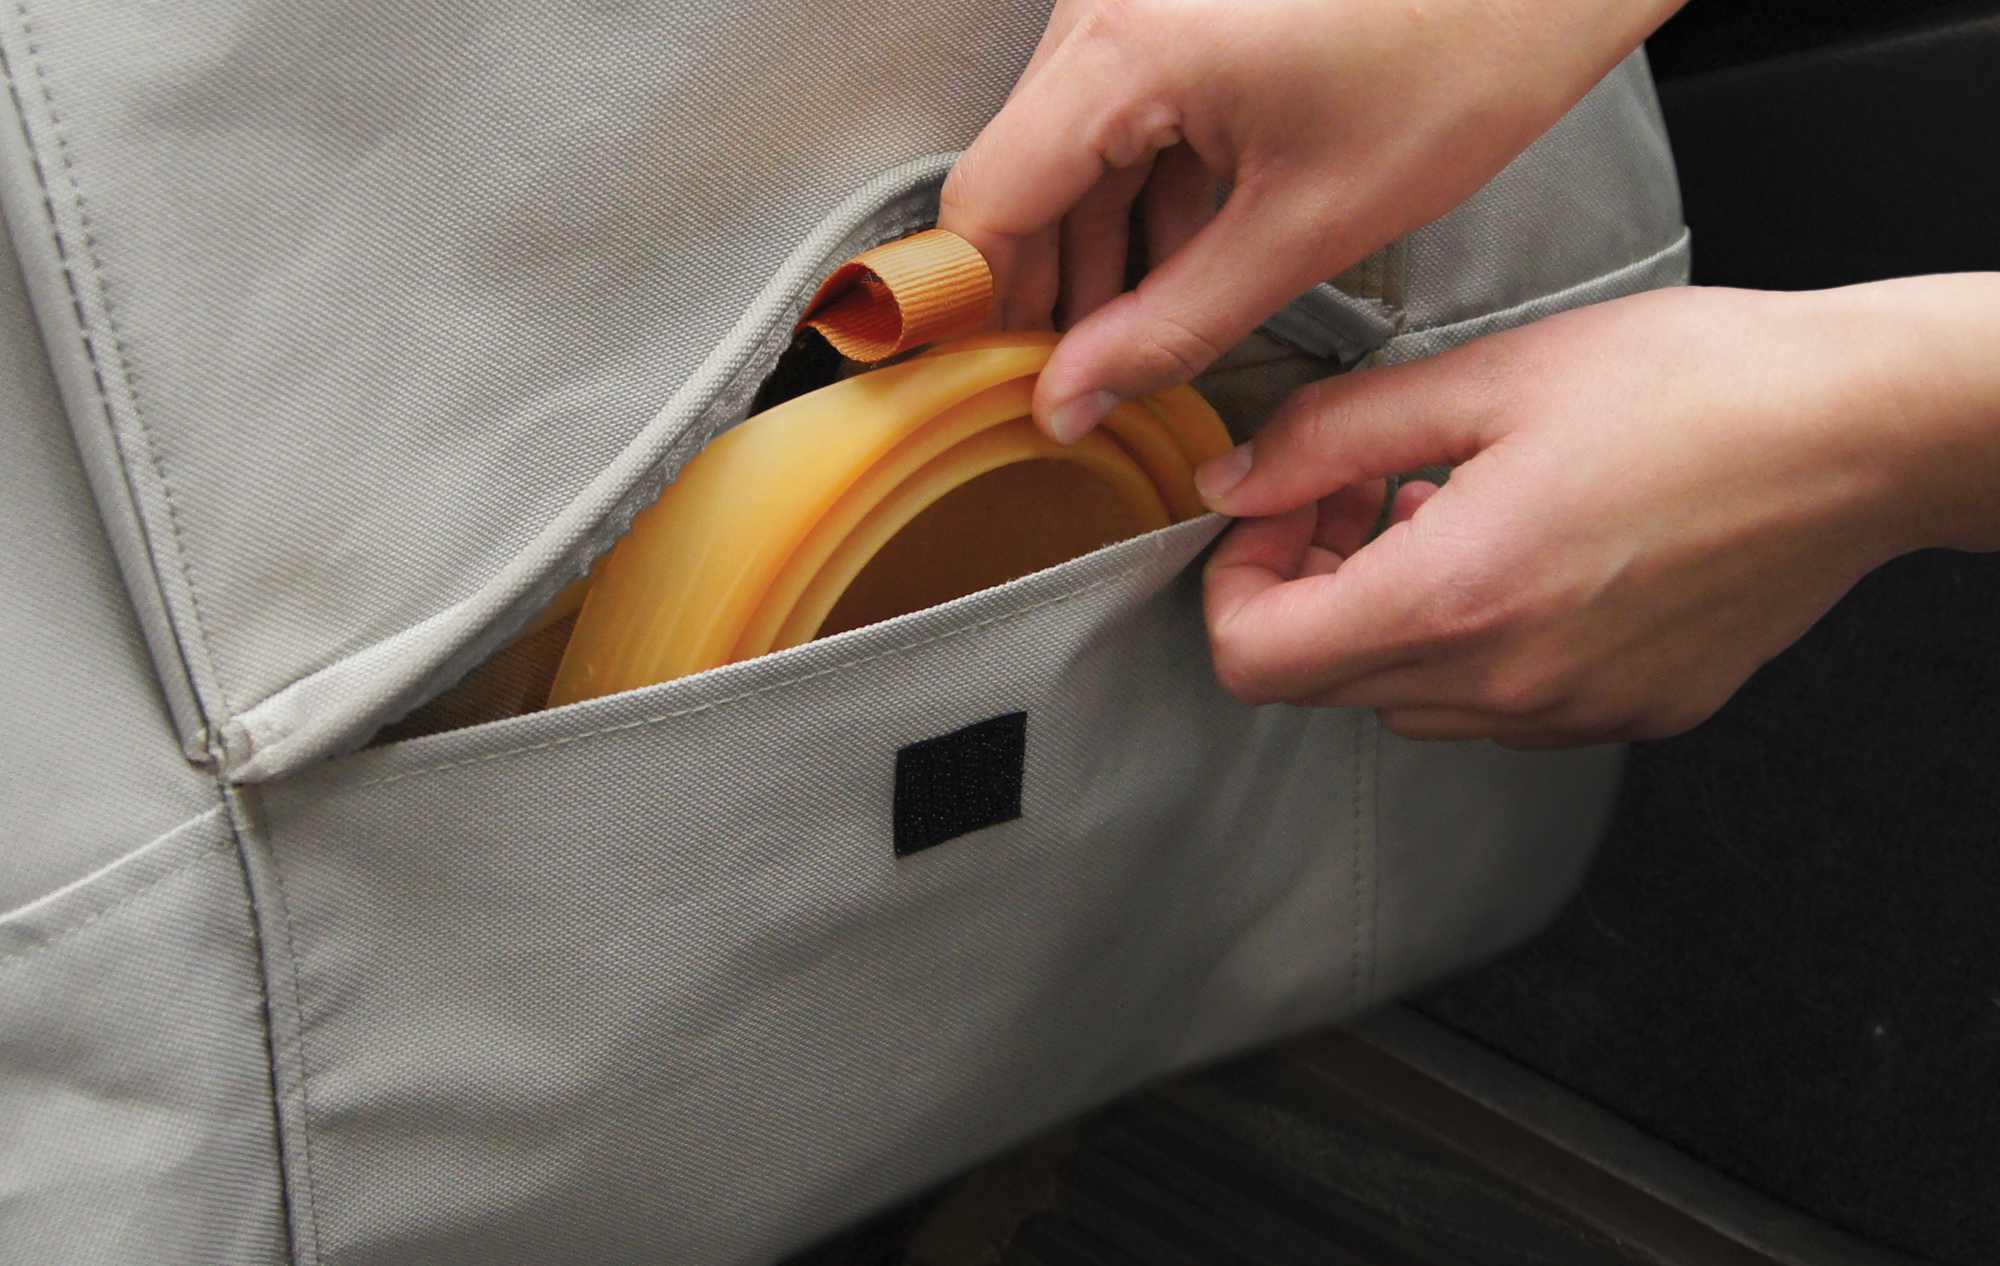 Kurgo CoPilot Bucket Seat Covers Feature Extra Pocket for Storing Dog Treats and Leashes